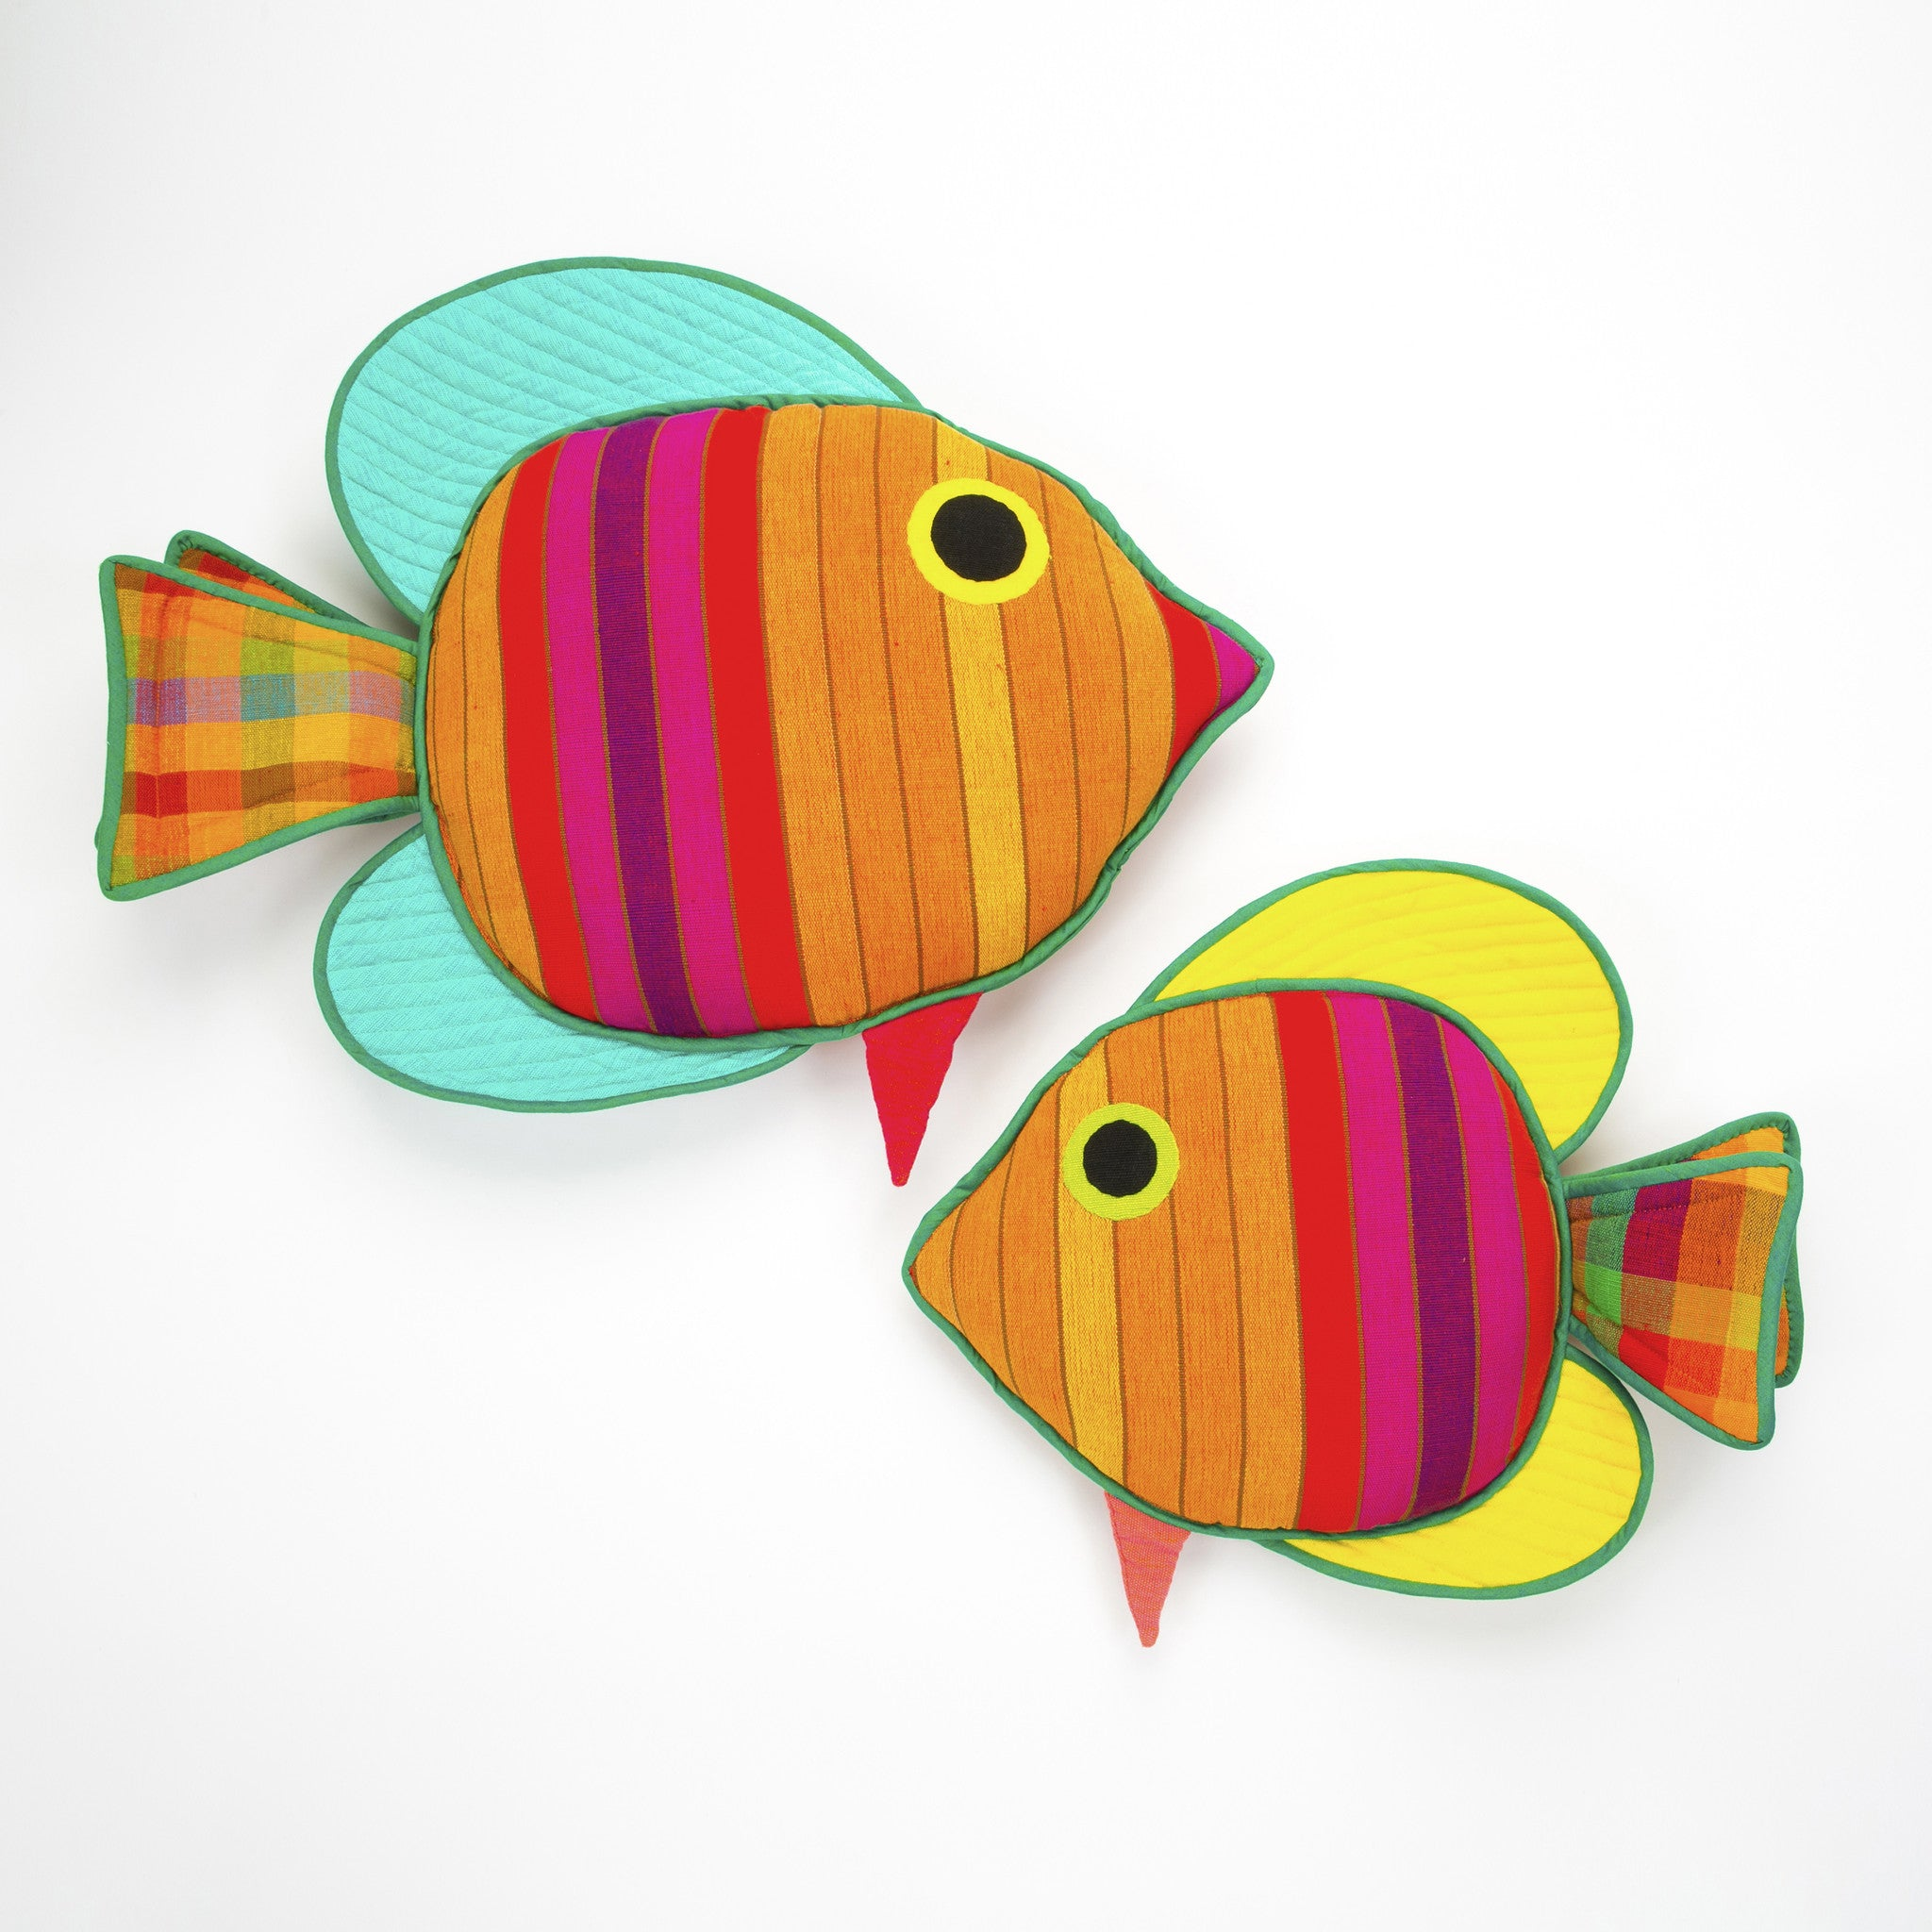 Gypsy, the Sail Fin Fish (small & large sizes)